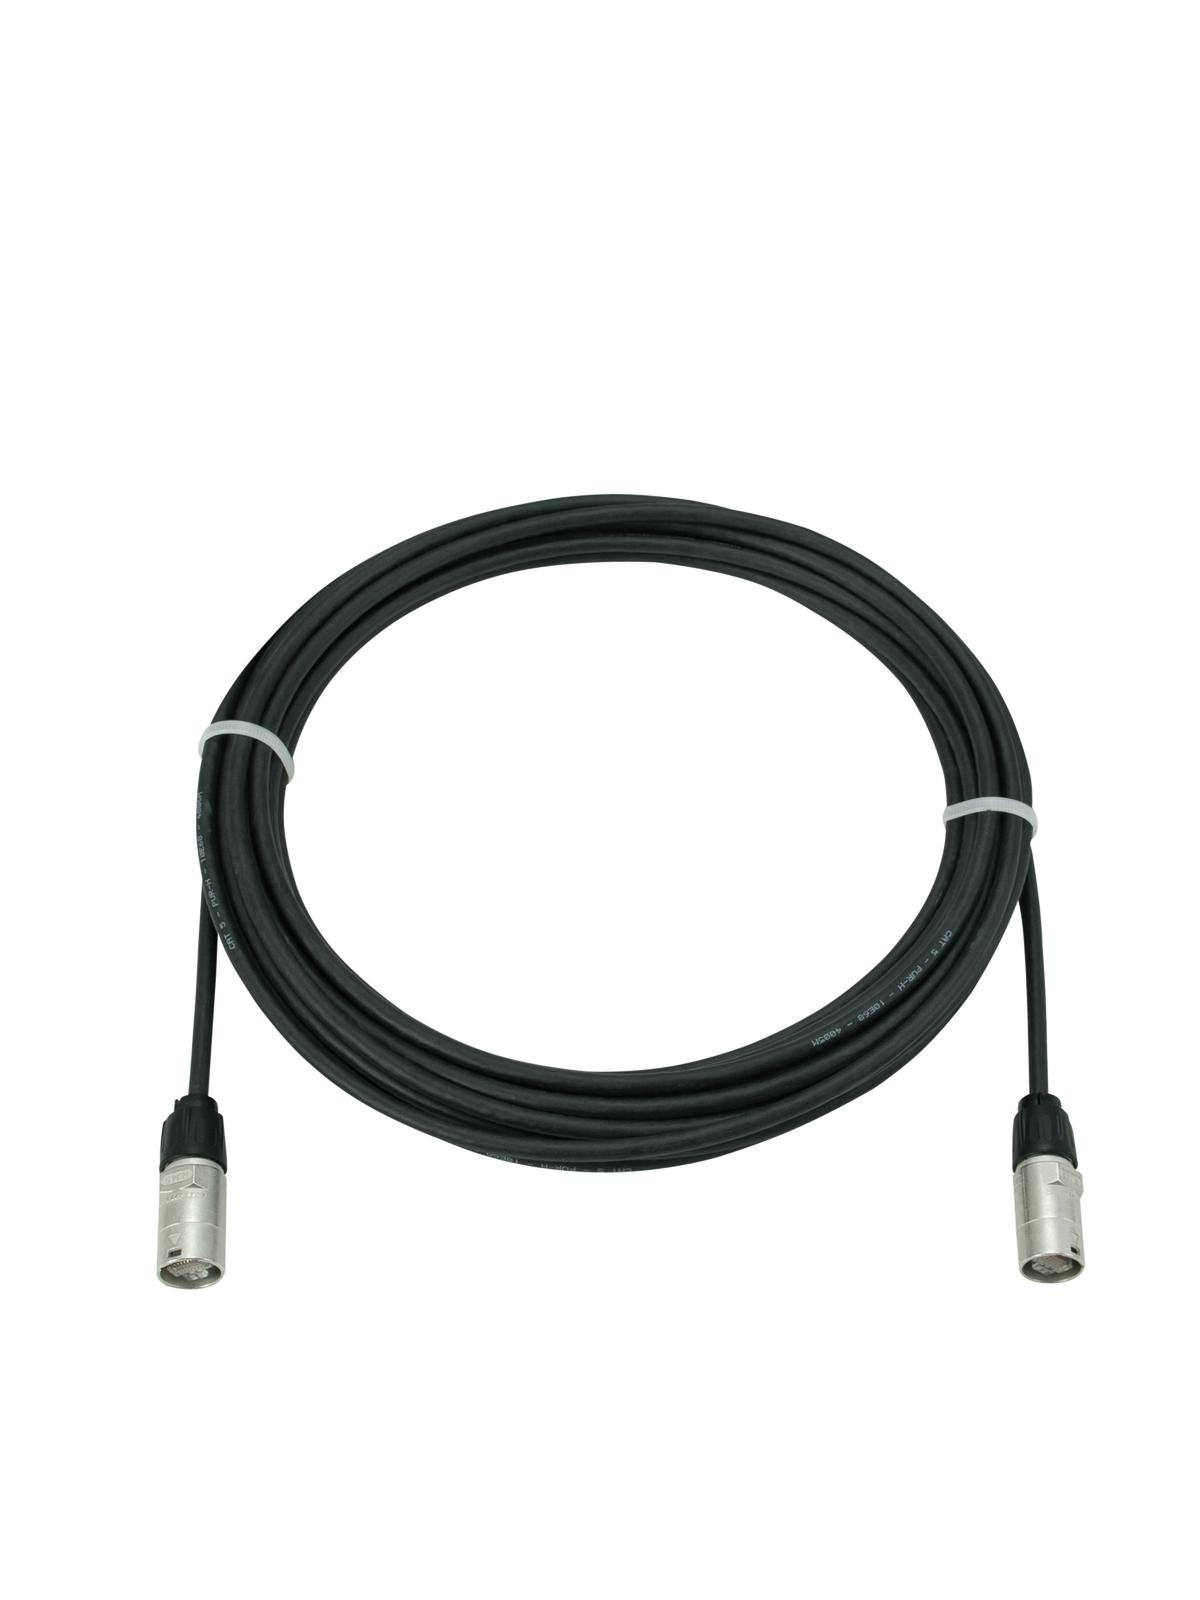 psso cat-5 cable 10m bk su mondospettacoli it